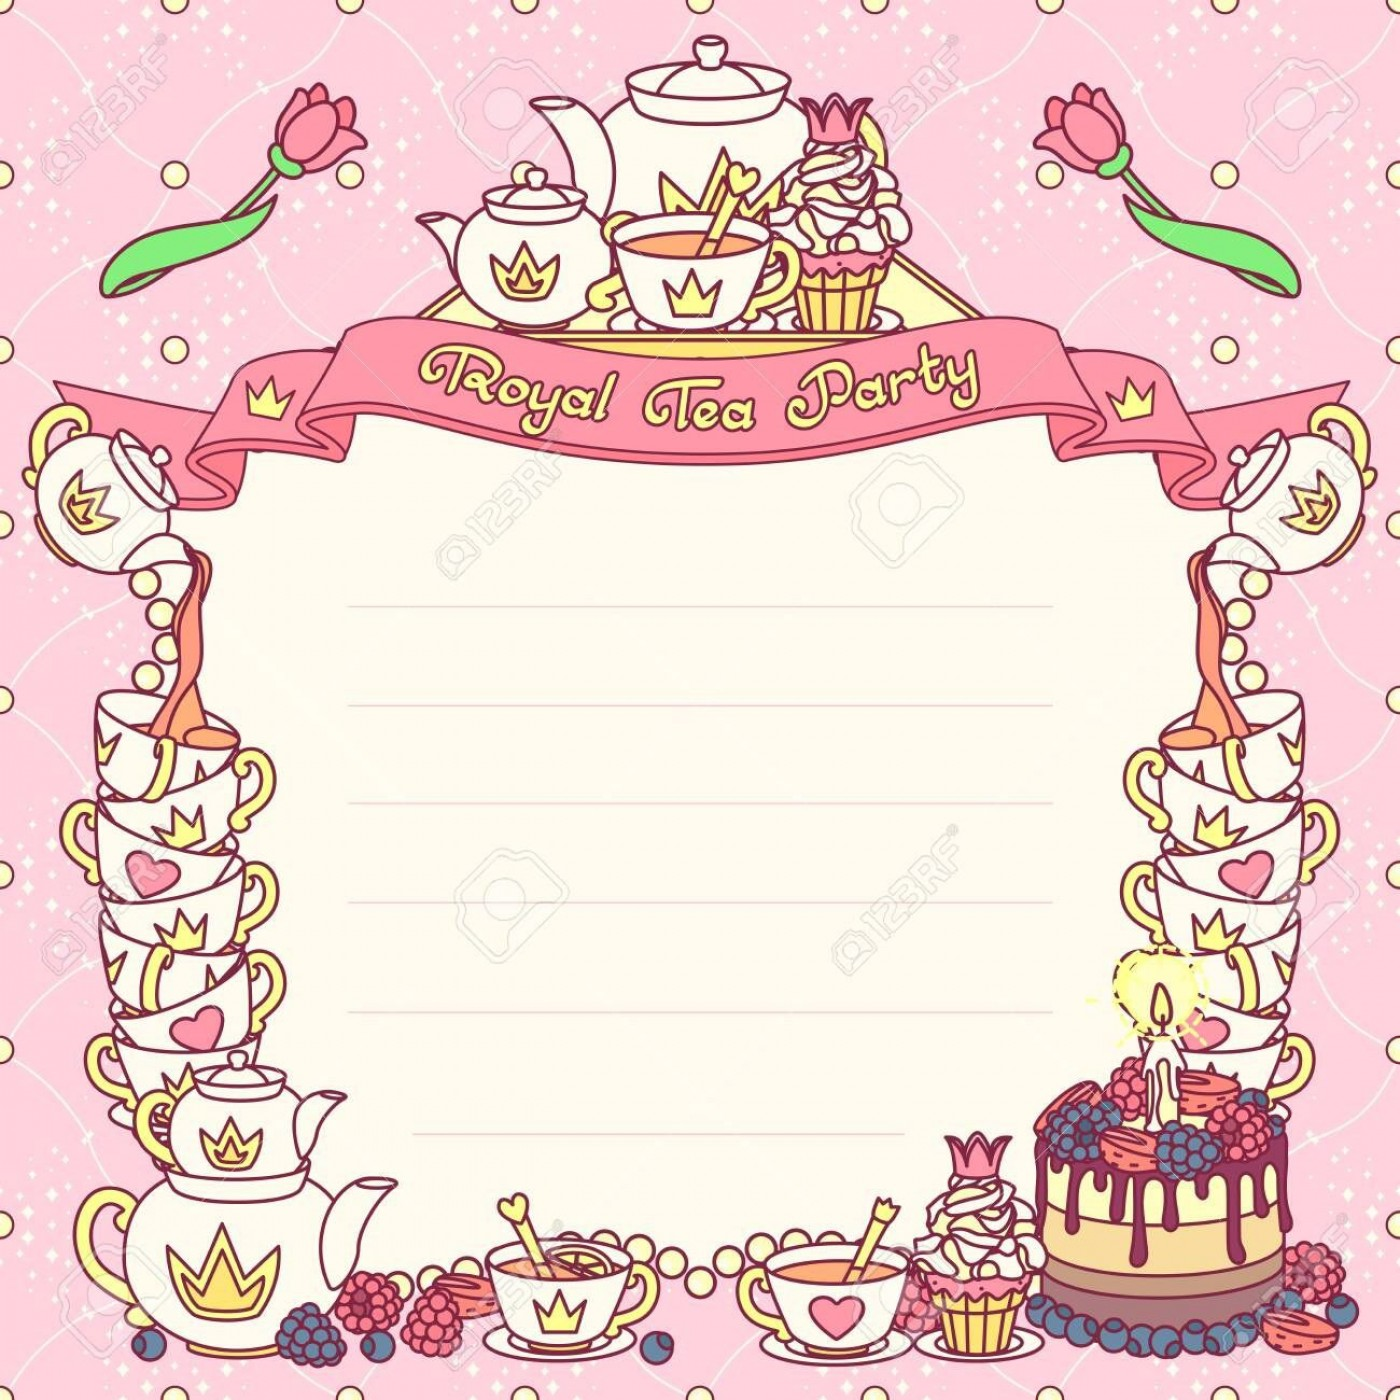 006 Sensational Tea Party Invitation Template Picture  Card Victorian Wording For Bridal Shower1400